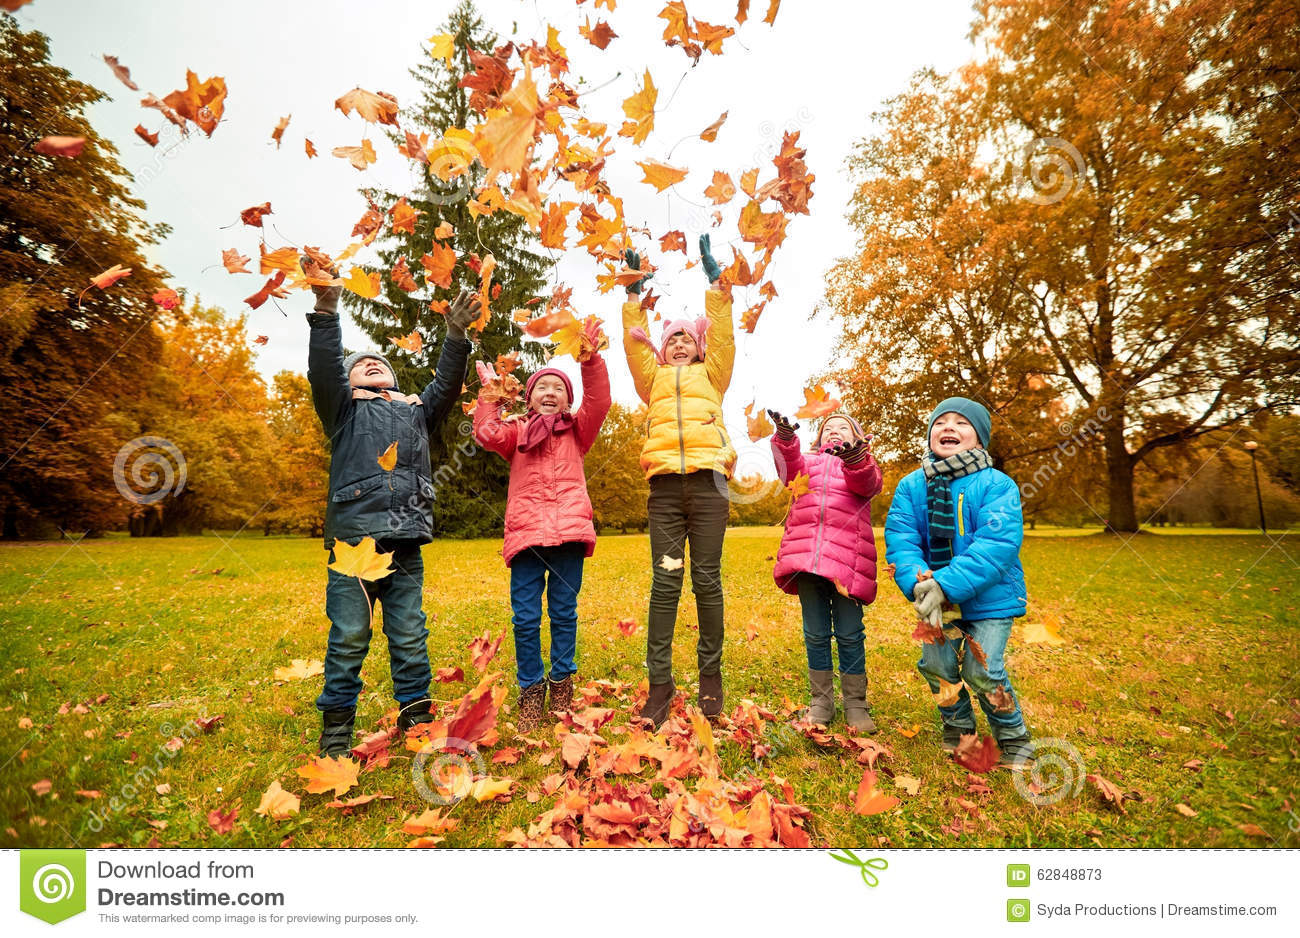 Falling Cherry Blossom Wallpaper Hd Happy Children Playing With Autumn Leaves In Park Stock